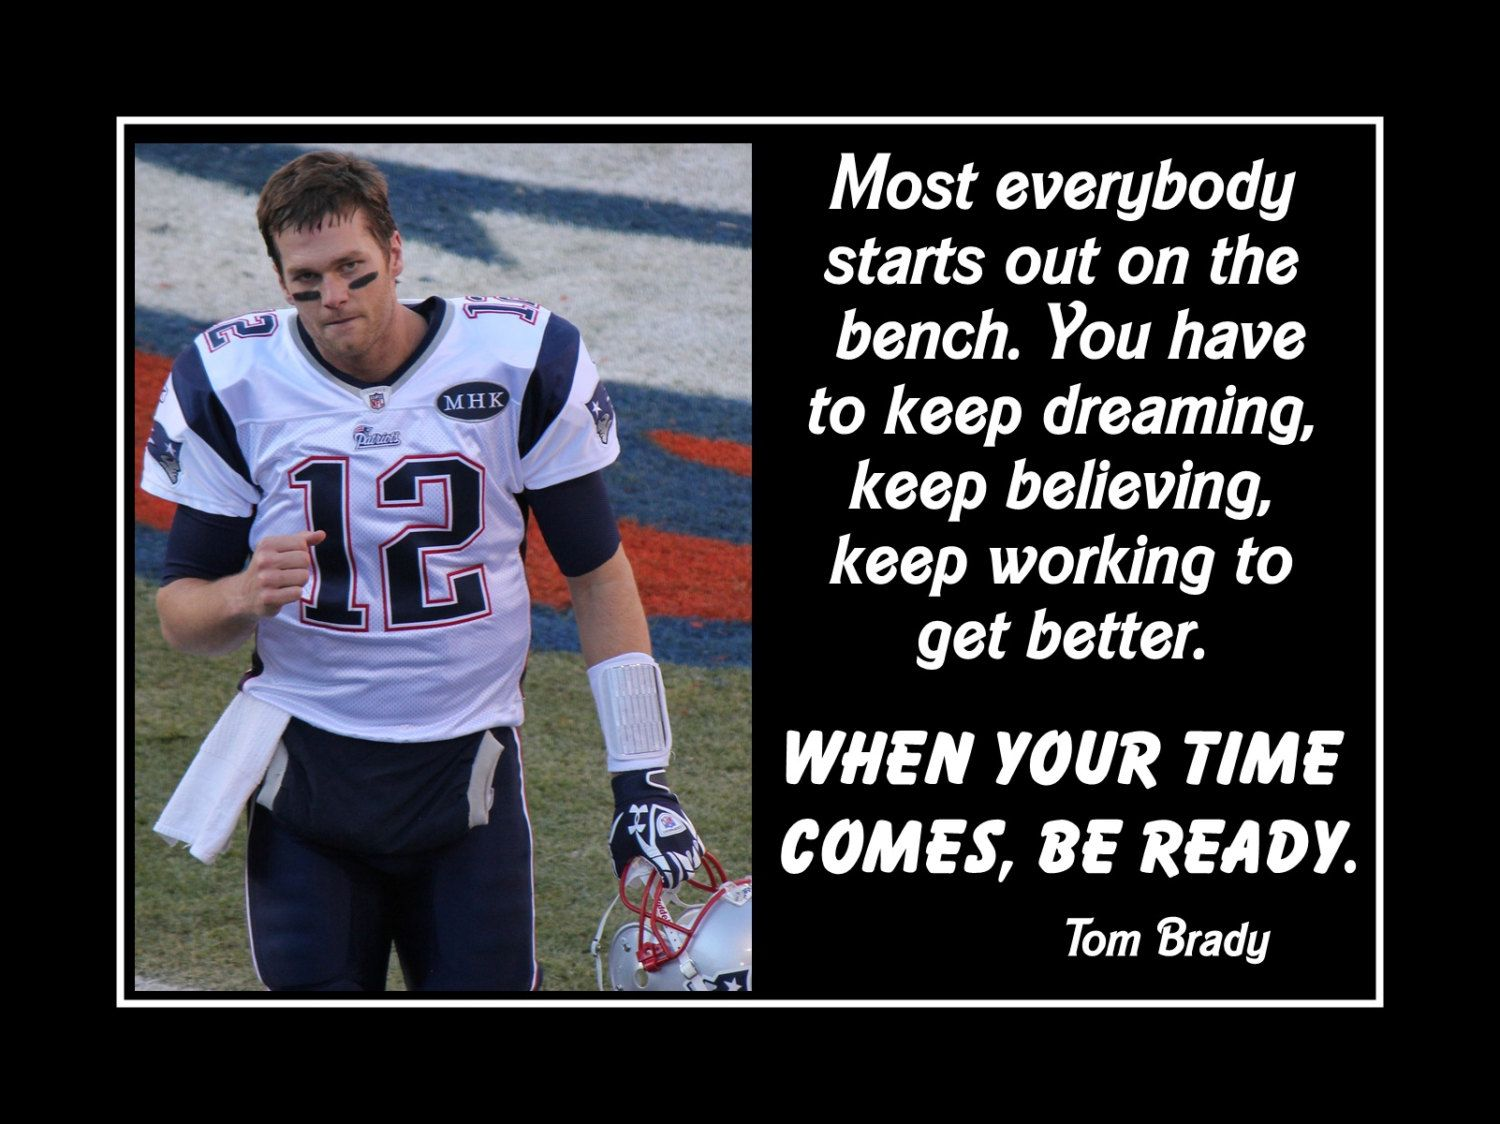 Football Motivation Poster Tom Brady Patriots Encouragement Photo Quote Wall Art Print 5x7 Qu Inspirational Football Quotes Football Motivation Football Quotes